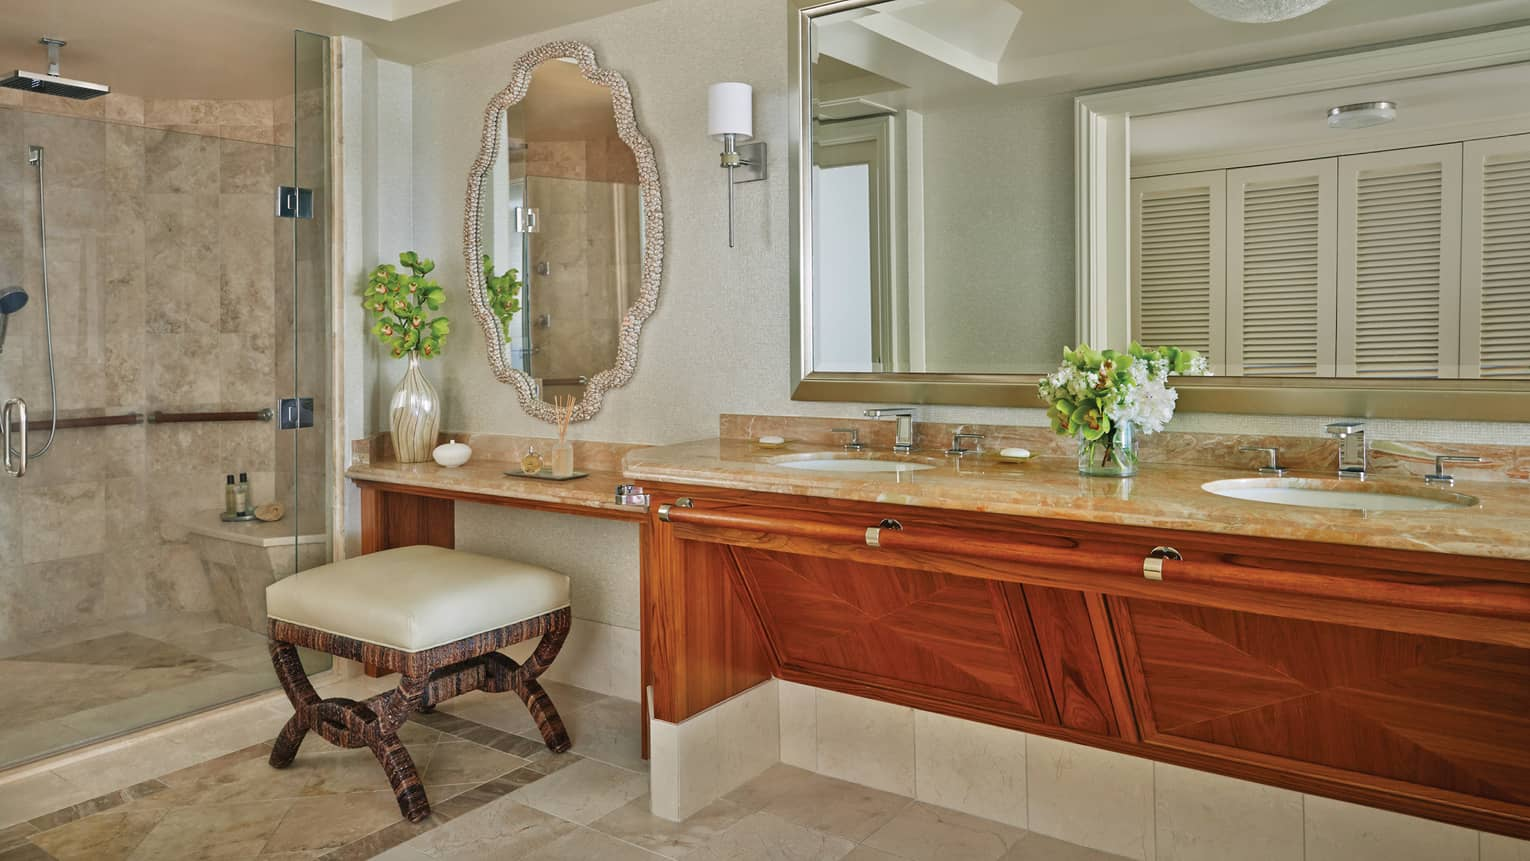 Lokelani Suite Master Bathroom with double vanity and makeup mirror